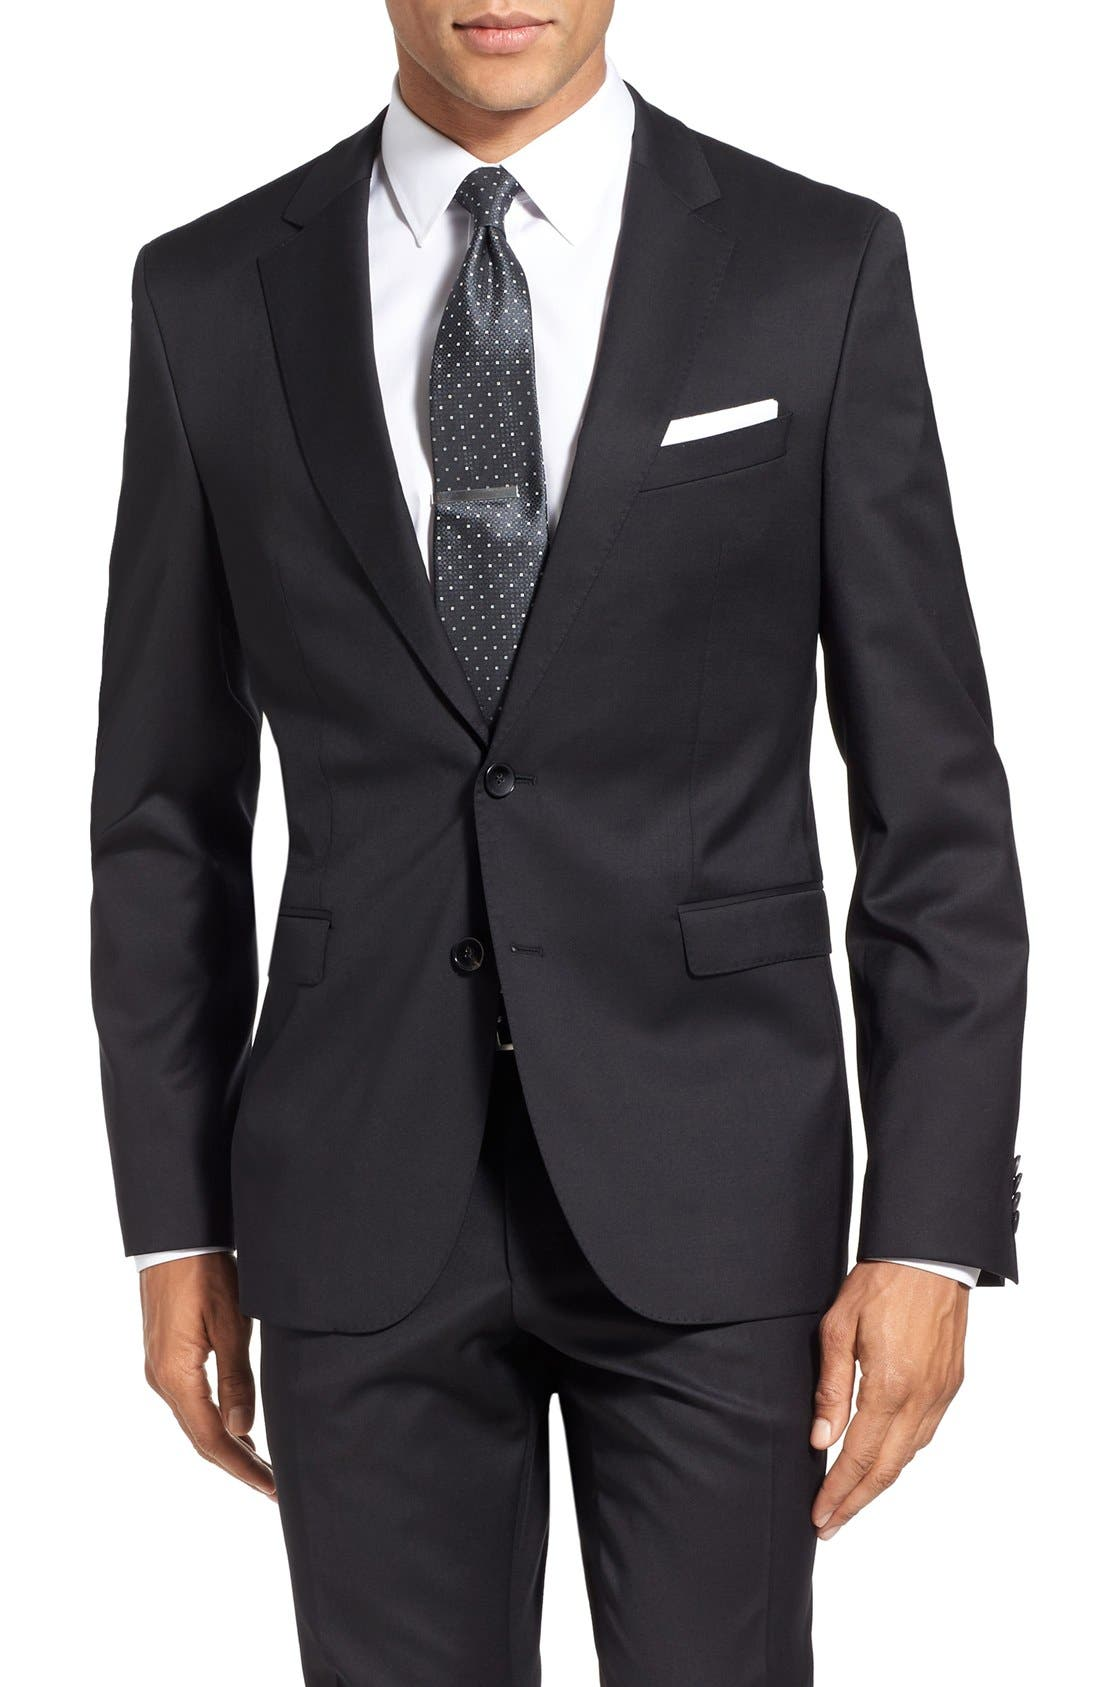 Ryan/Win Extra Trim Fit Solid Wool Suit,                             Alternate thumbnail 12, color,                             BLACK